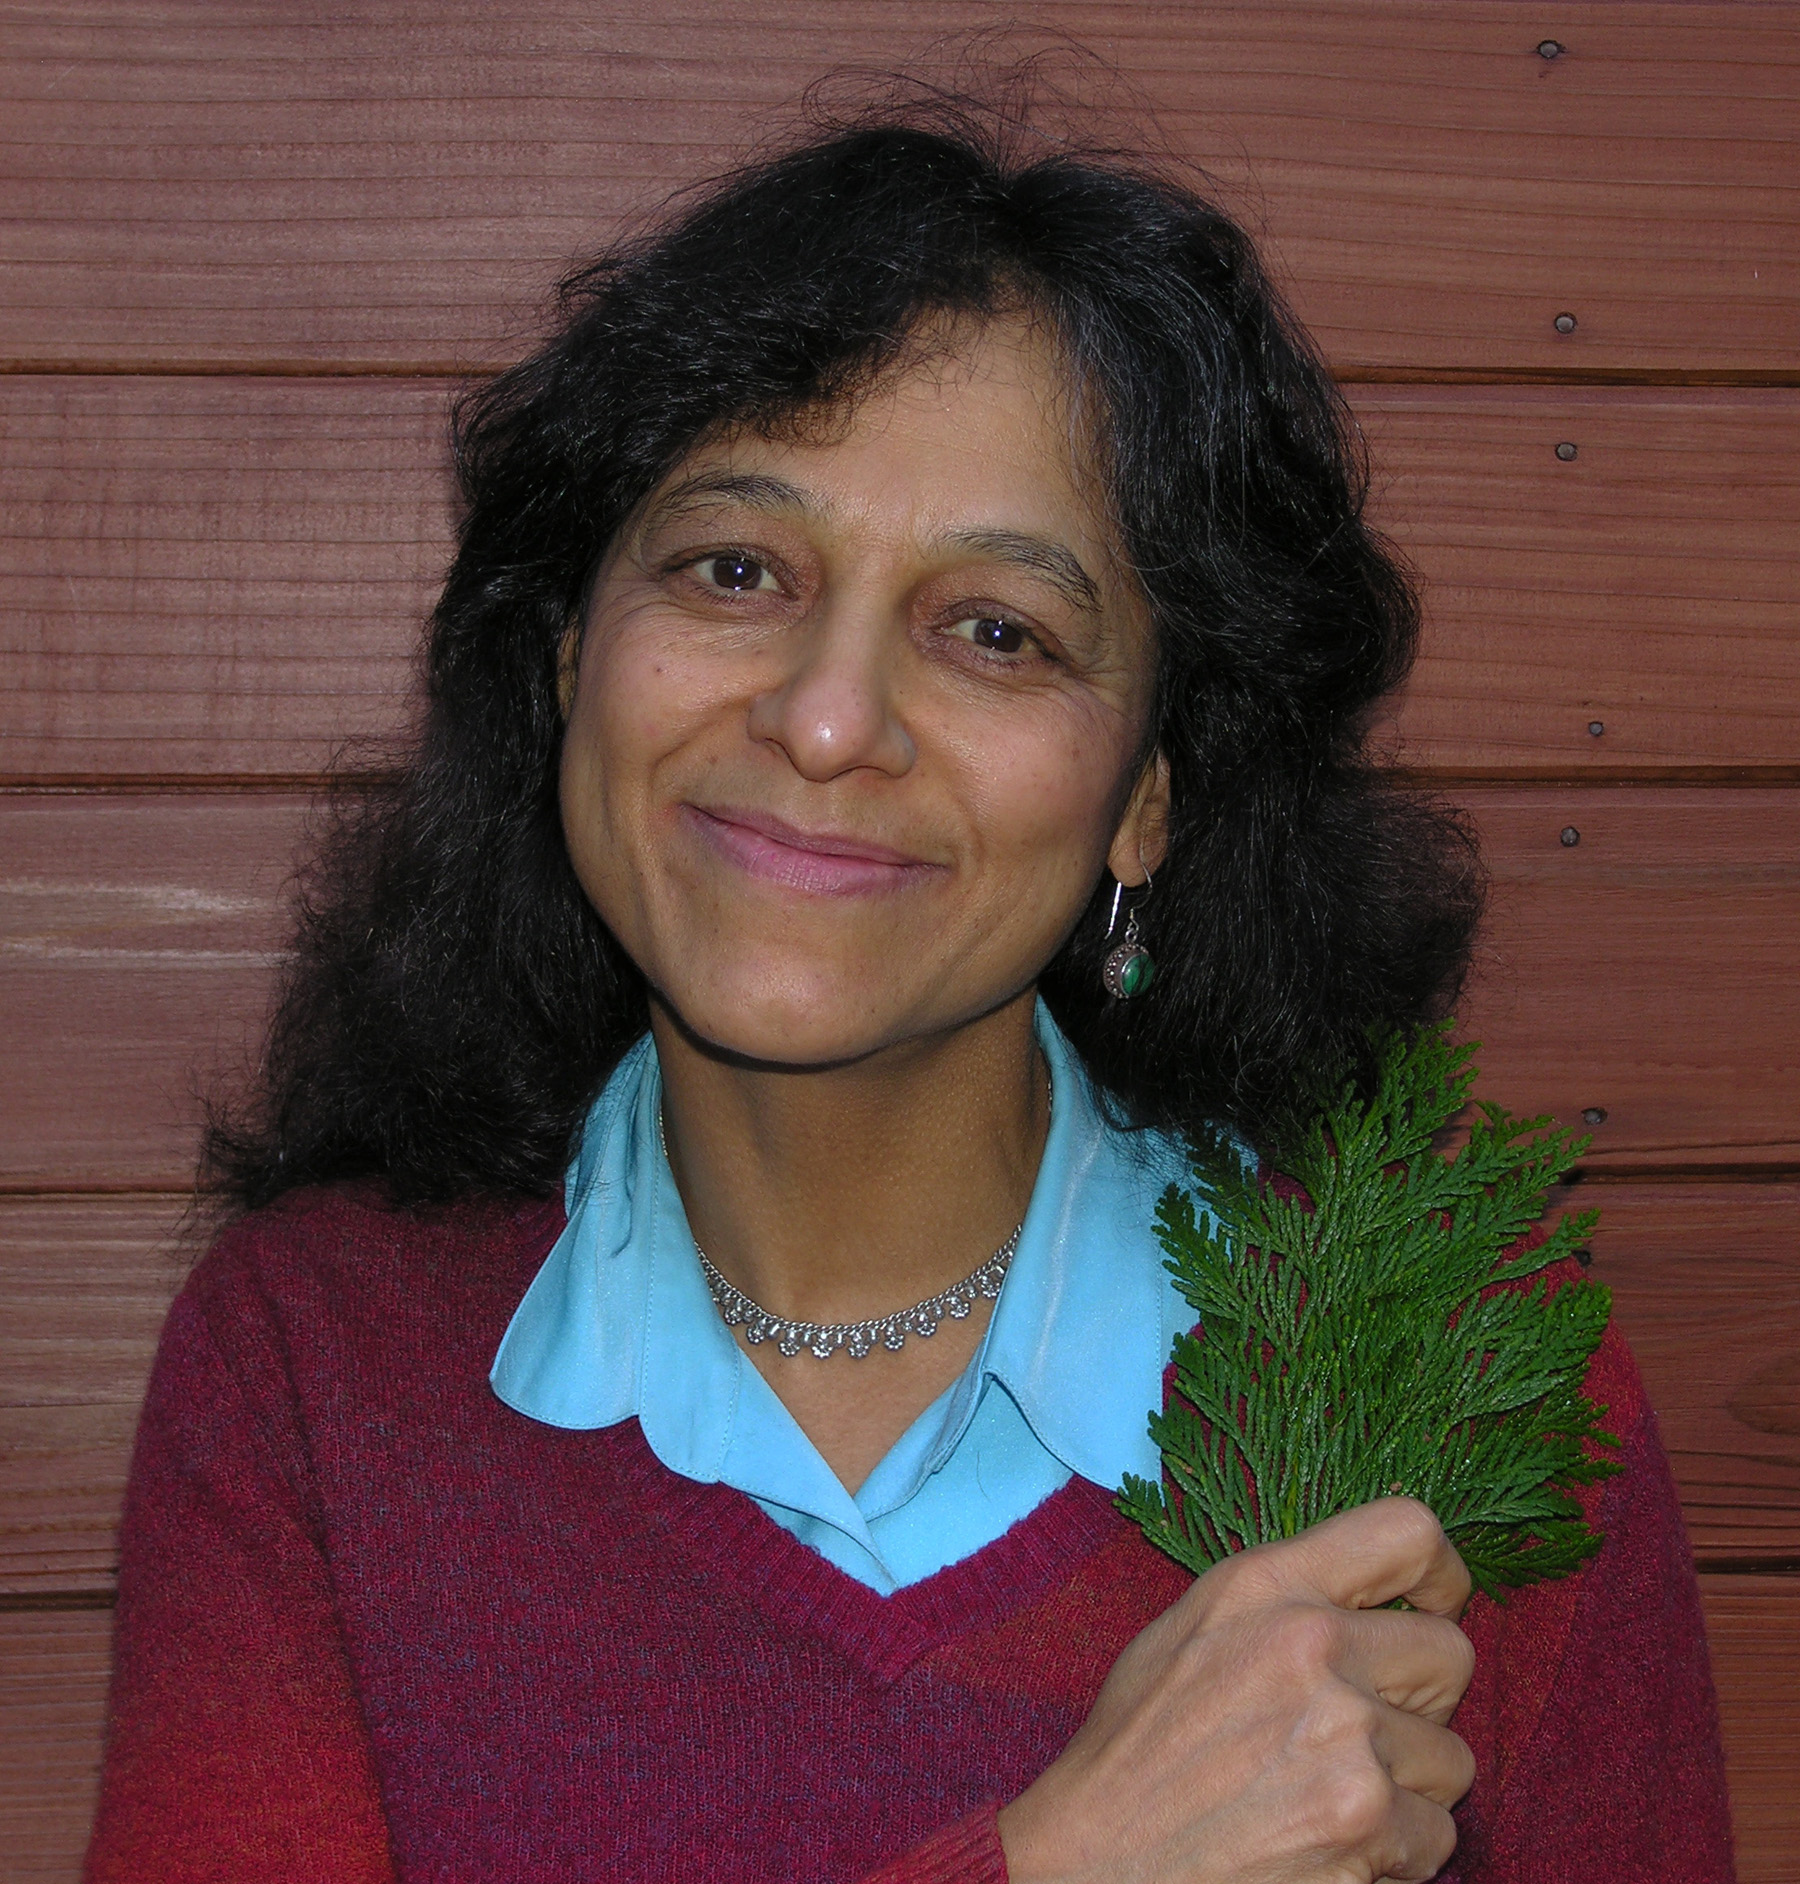 University of Utah biologist Nalini Nadkarni has won a major award from the world's largest general science society for her efforts to involve the public in science.